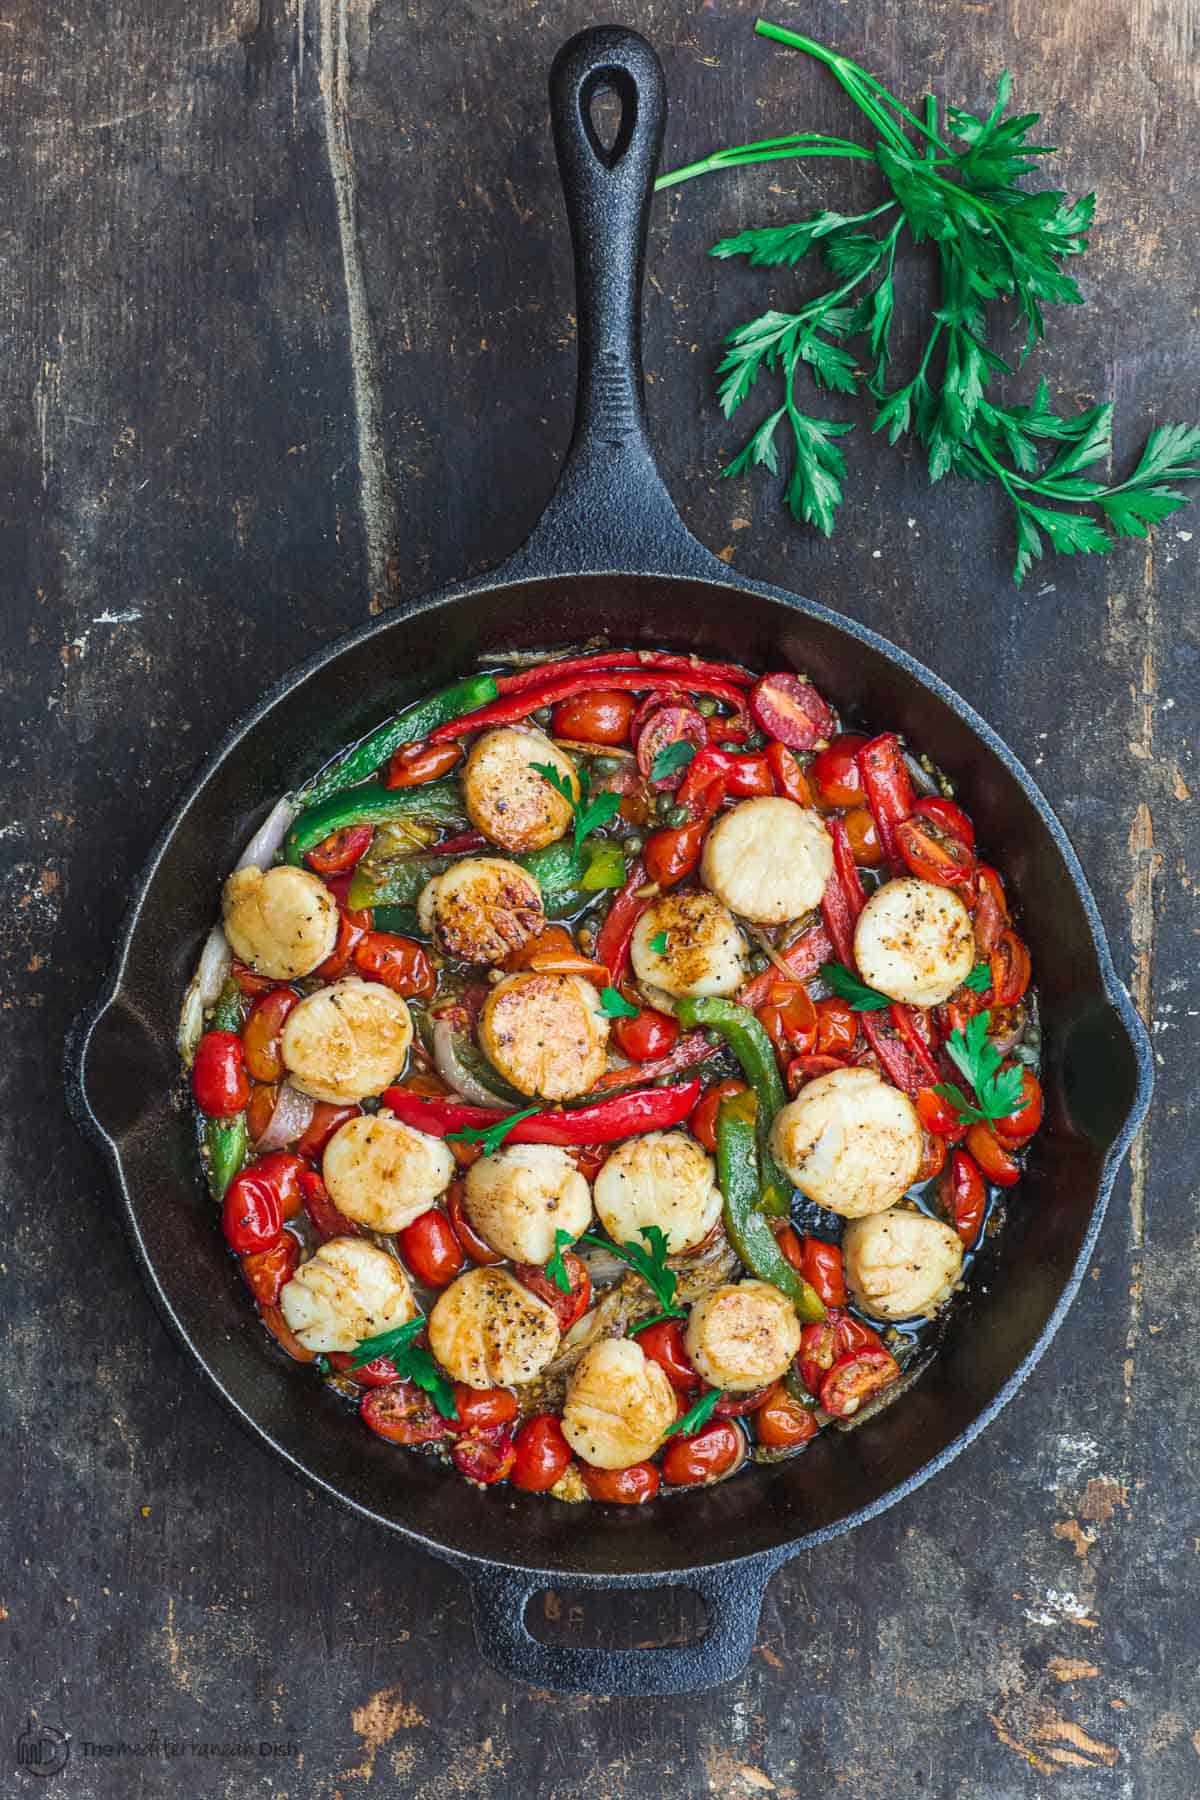 Scallops with tomatoes and bell peppers, sauteed in a cast iron skillet